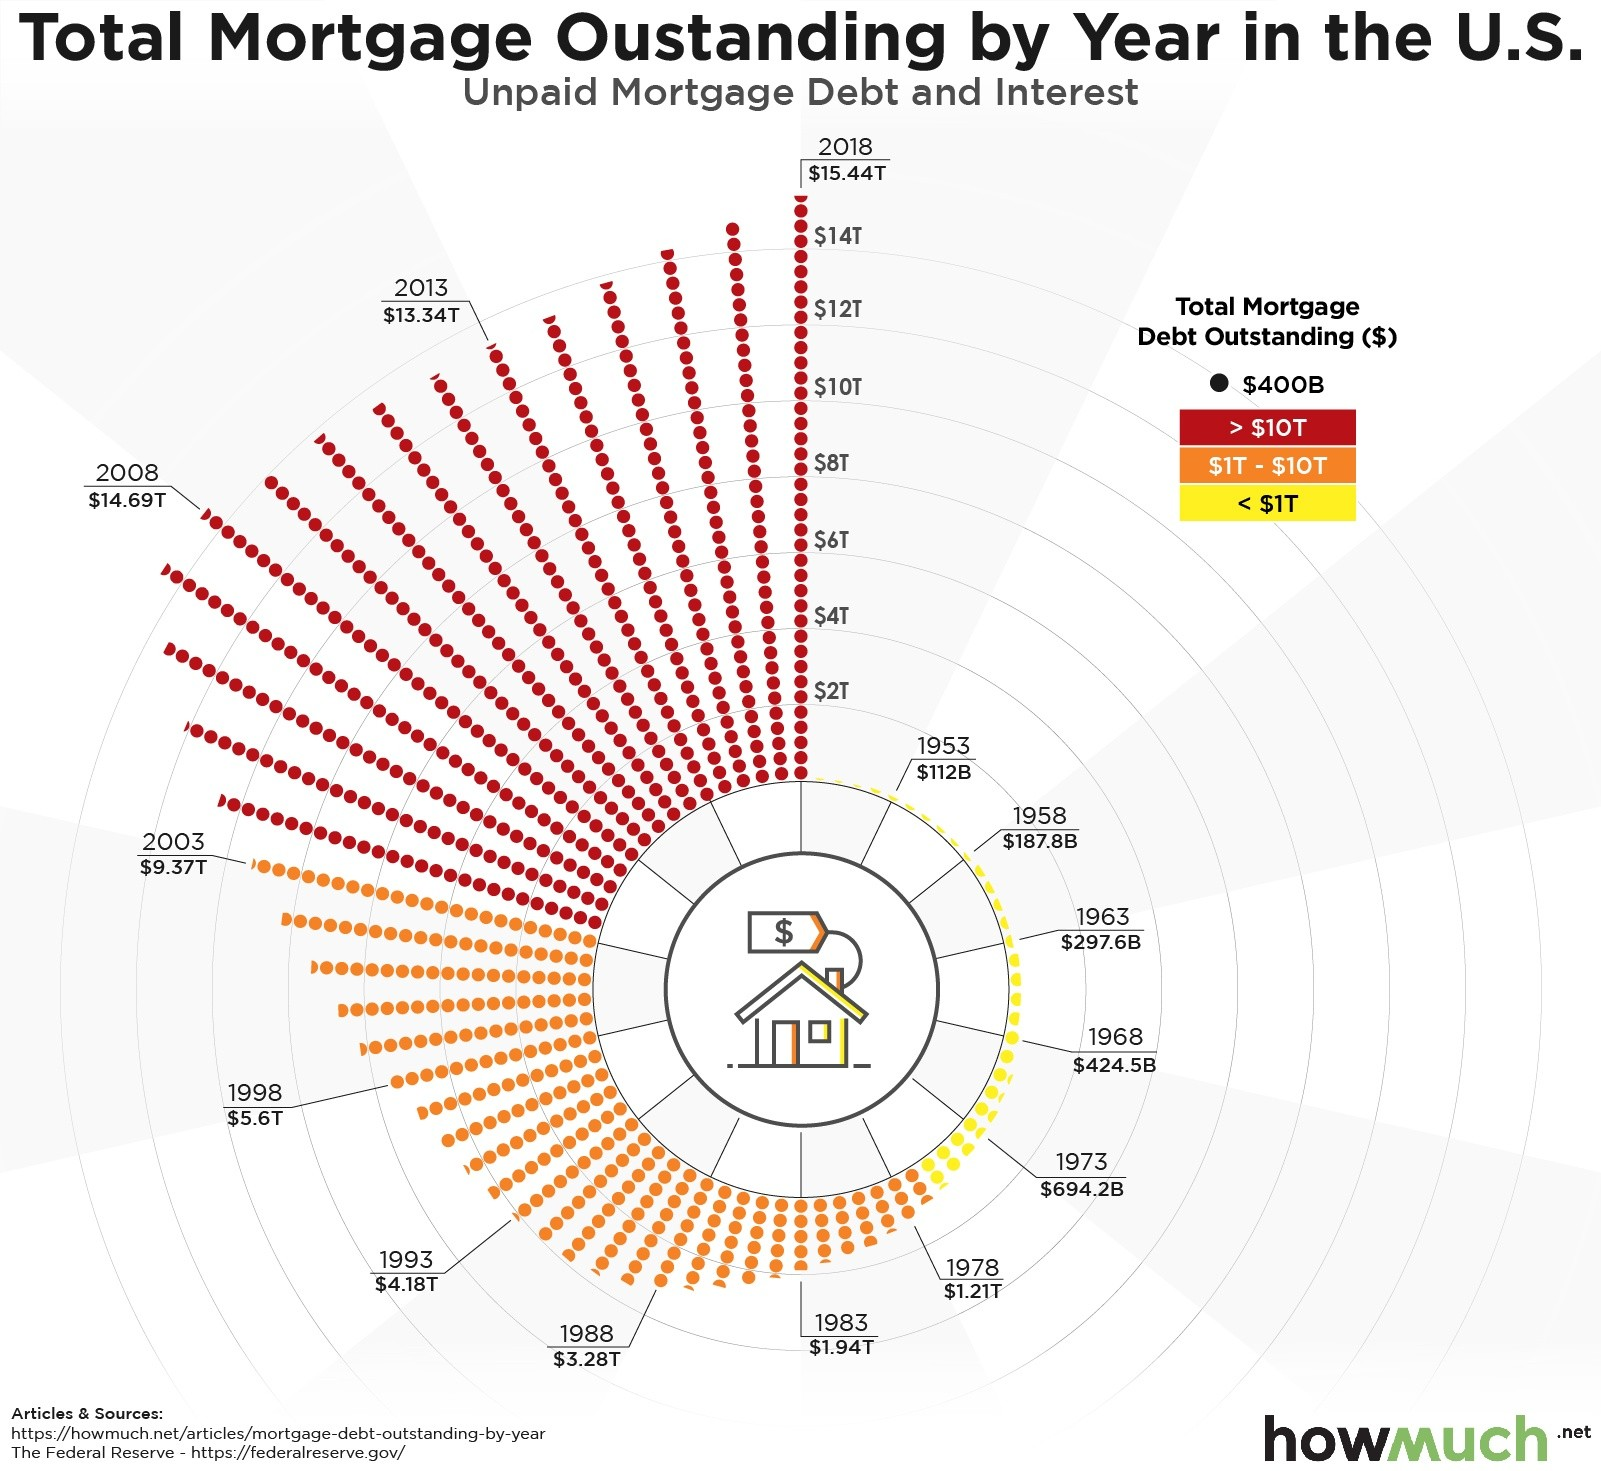 Outstanding mortgage debt by year